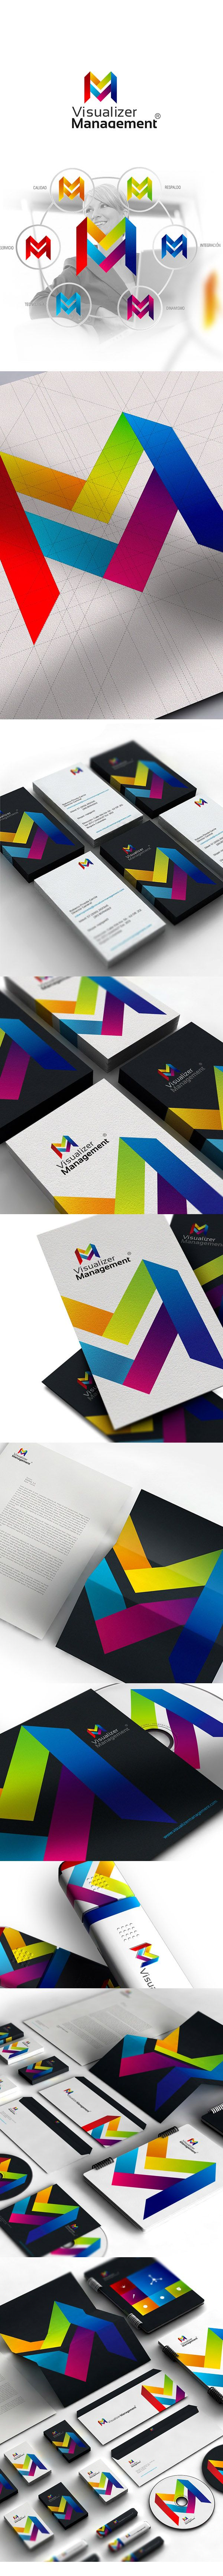 VM Corporate and Brand Identity